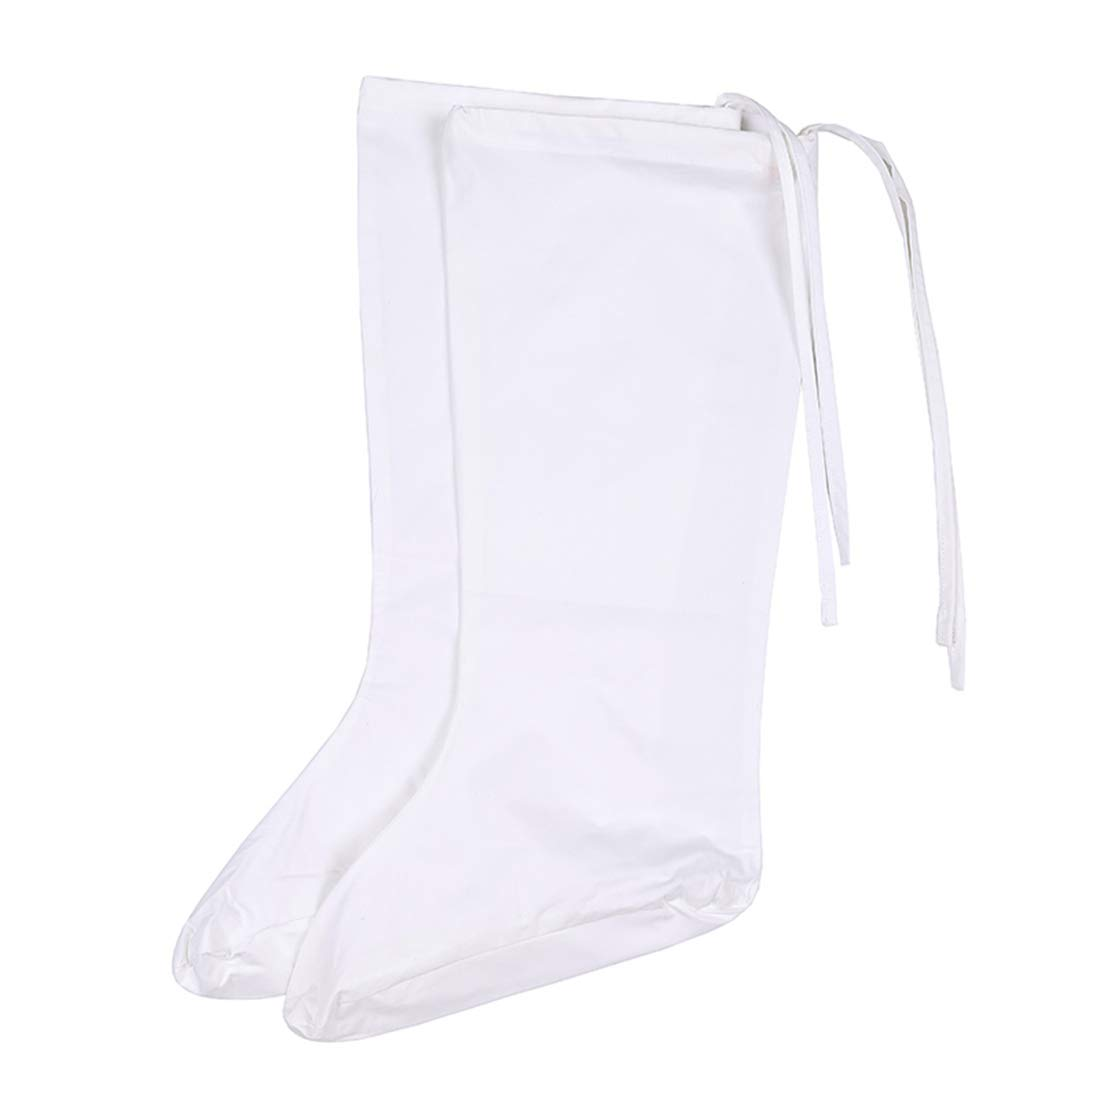 343b99a9a8 Ez-sofei Chinese Hanfu Cloth Socks Cosplay Costume Accessory for Men Women